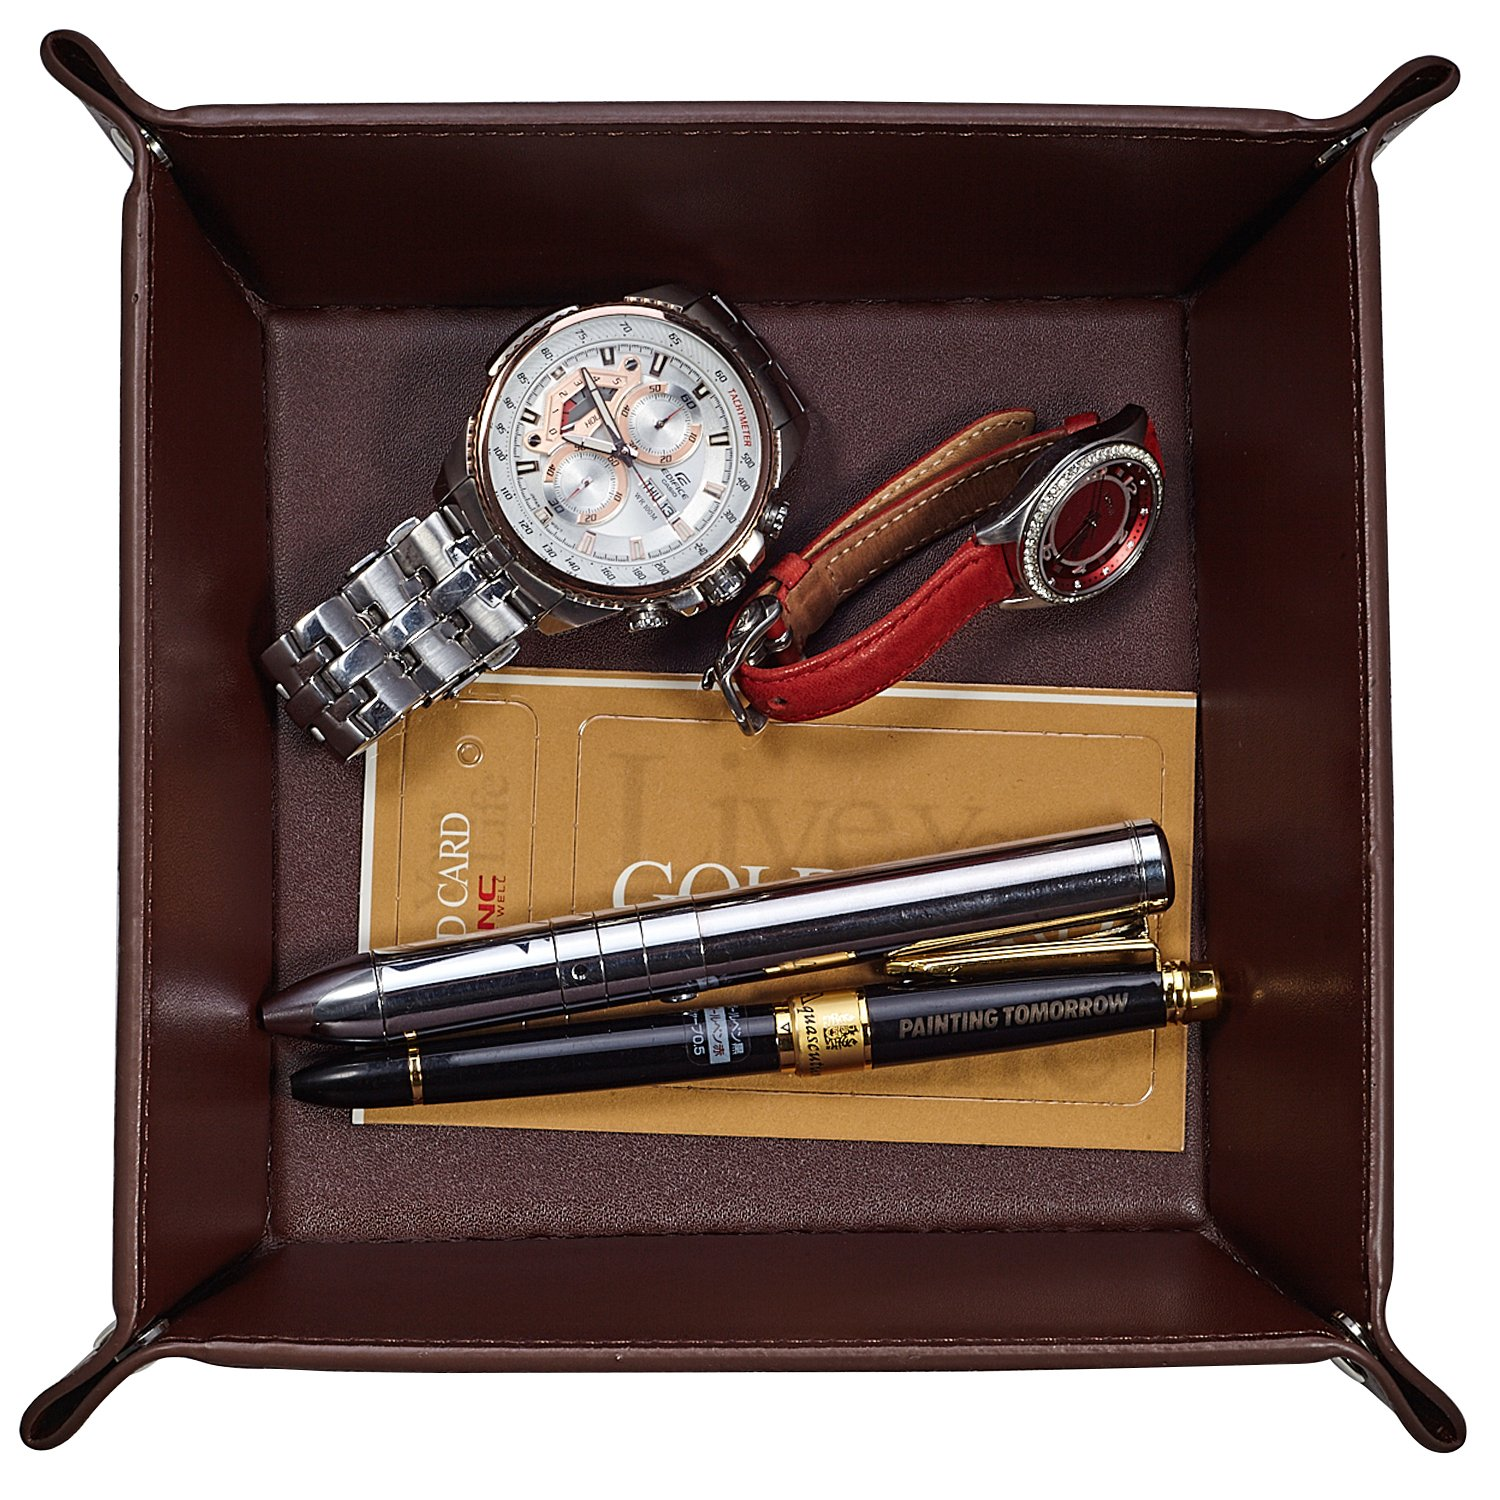 Oarie Jewelry Tray Valet Pu Leather Catchall For Men Key Wallet Coin Box